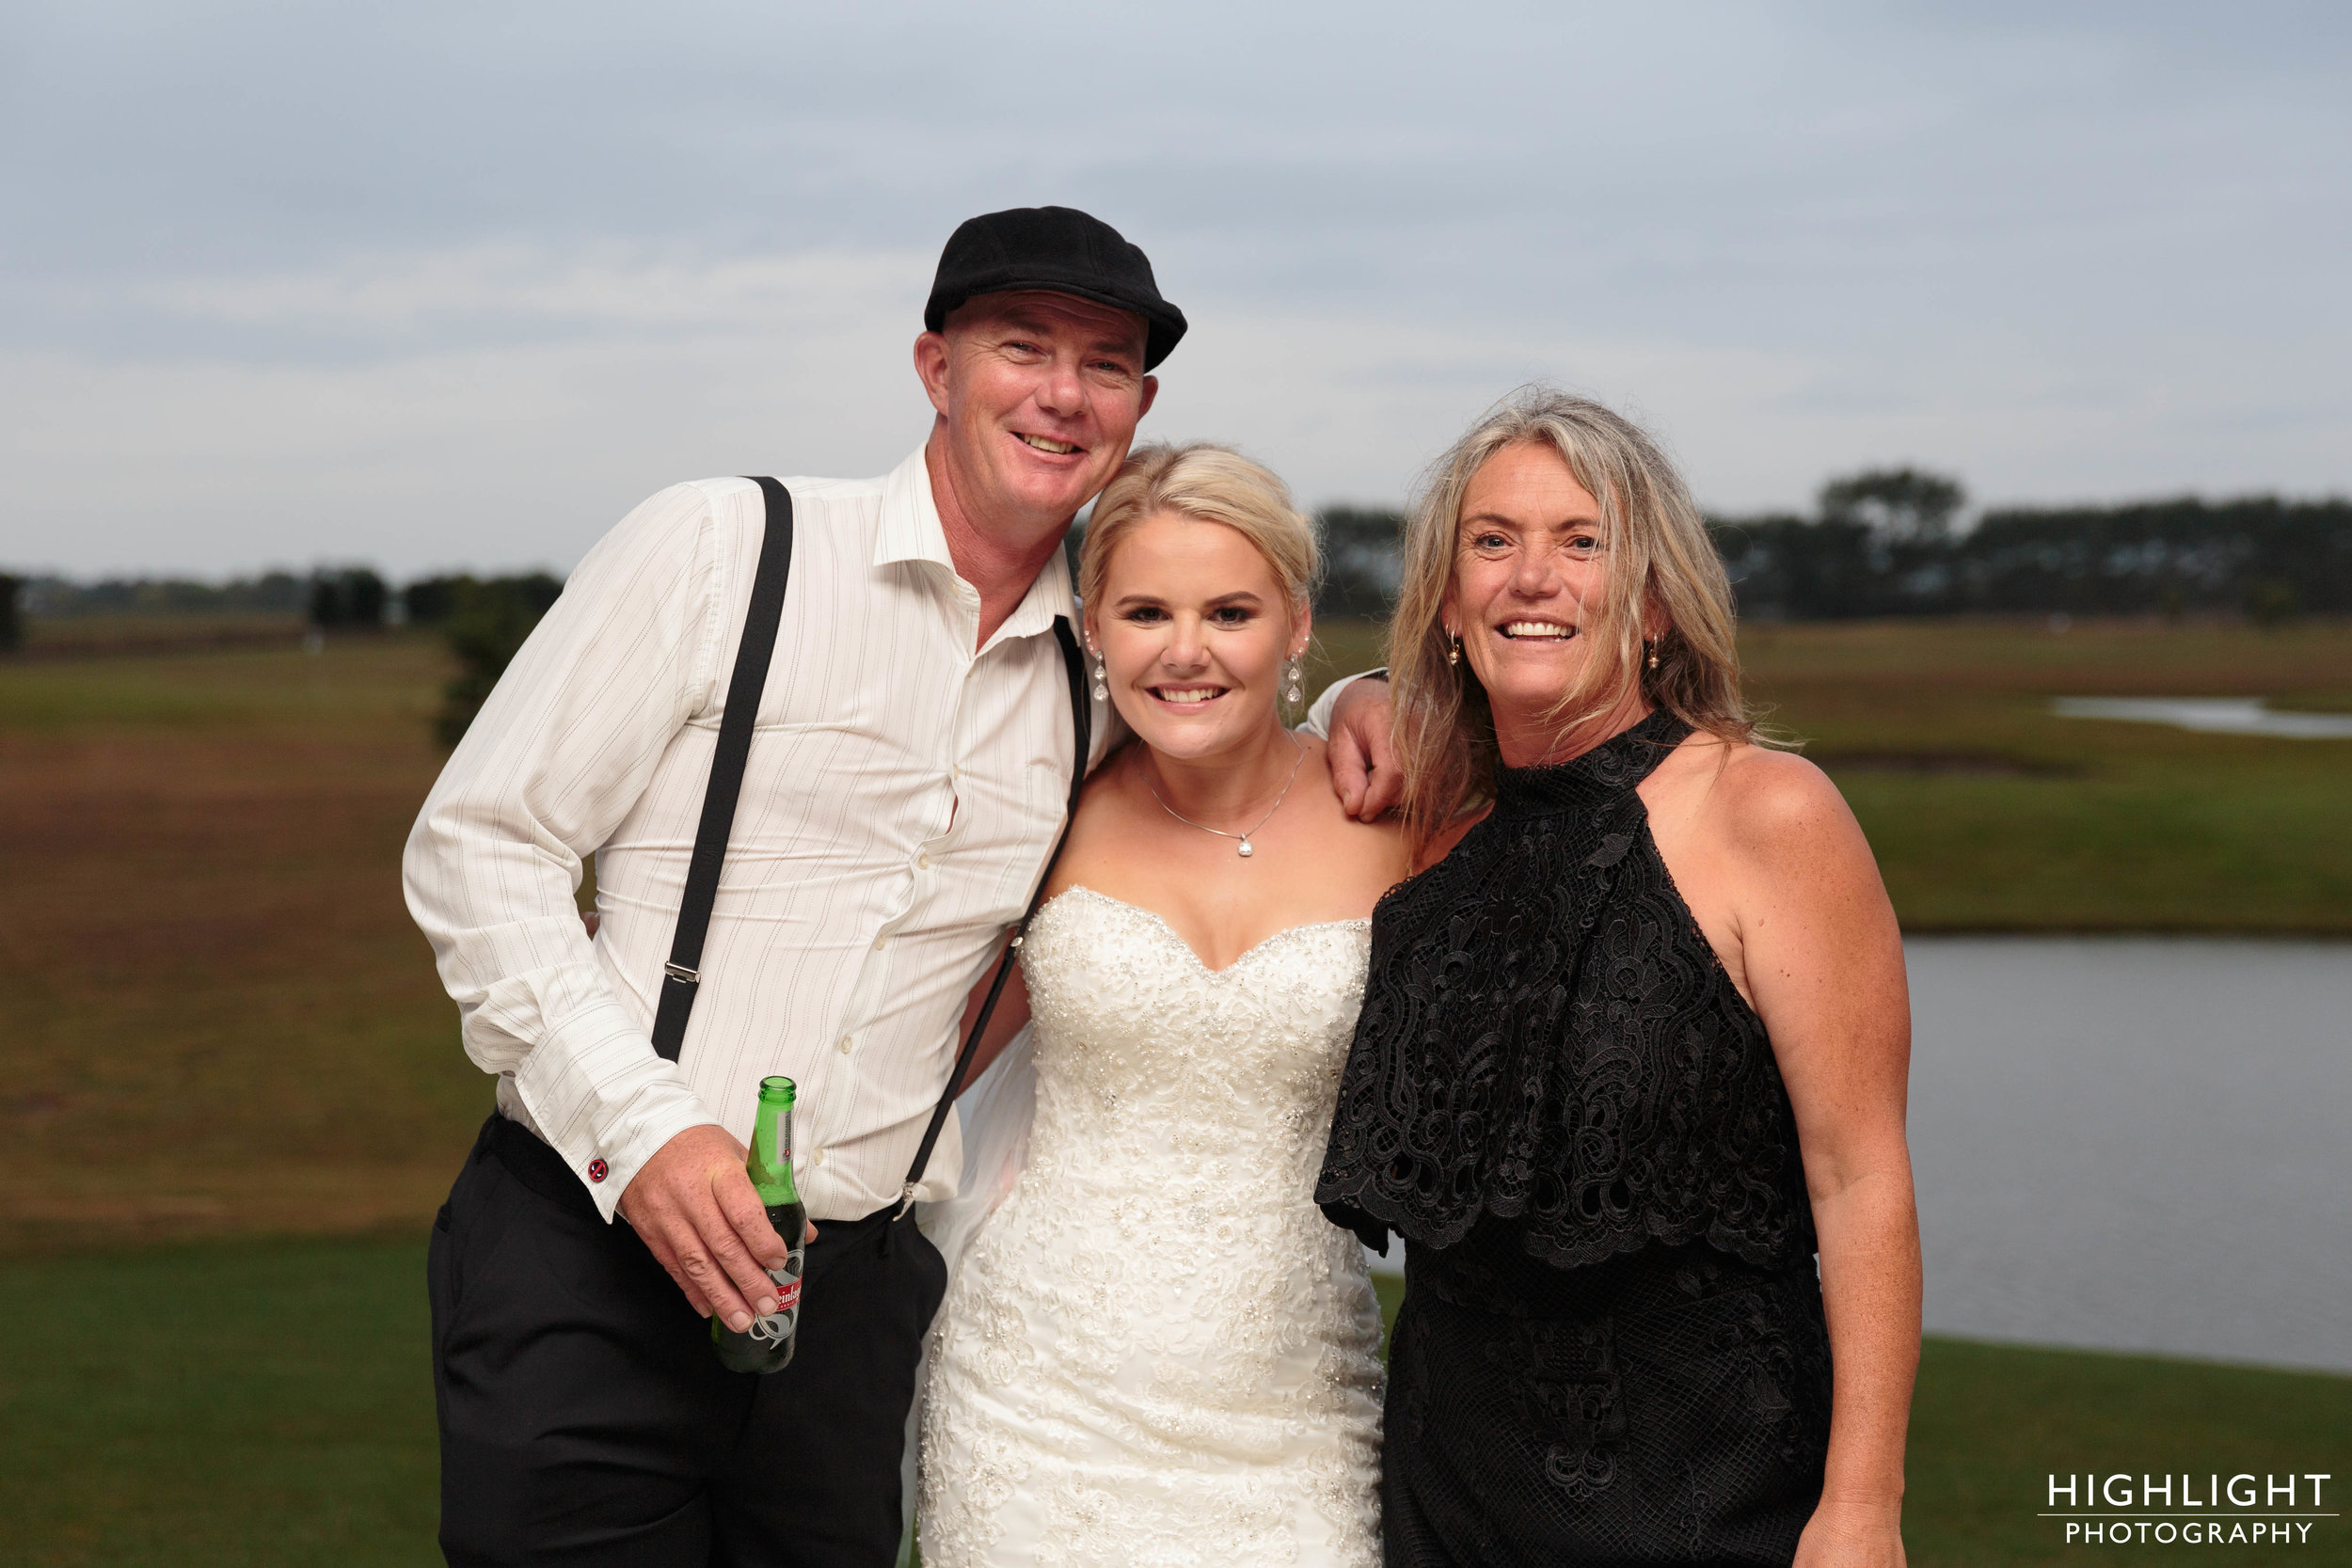 highlight-wedding-photography-new-zealand-cs-orlando-country-wedding-palmerston-north-157.jpg